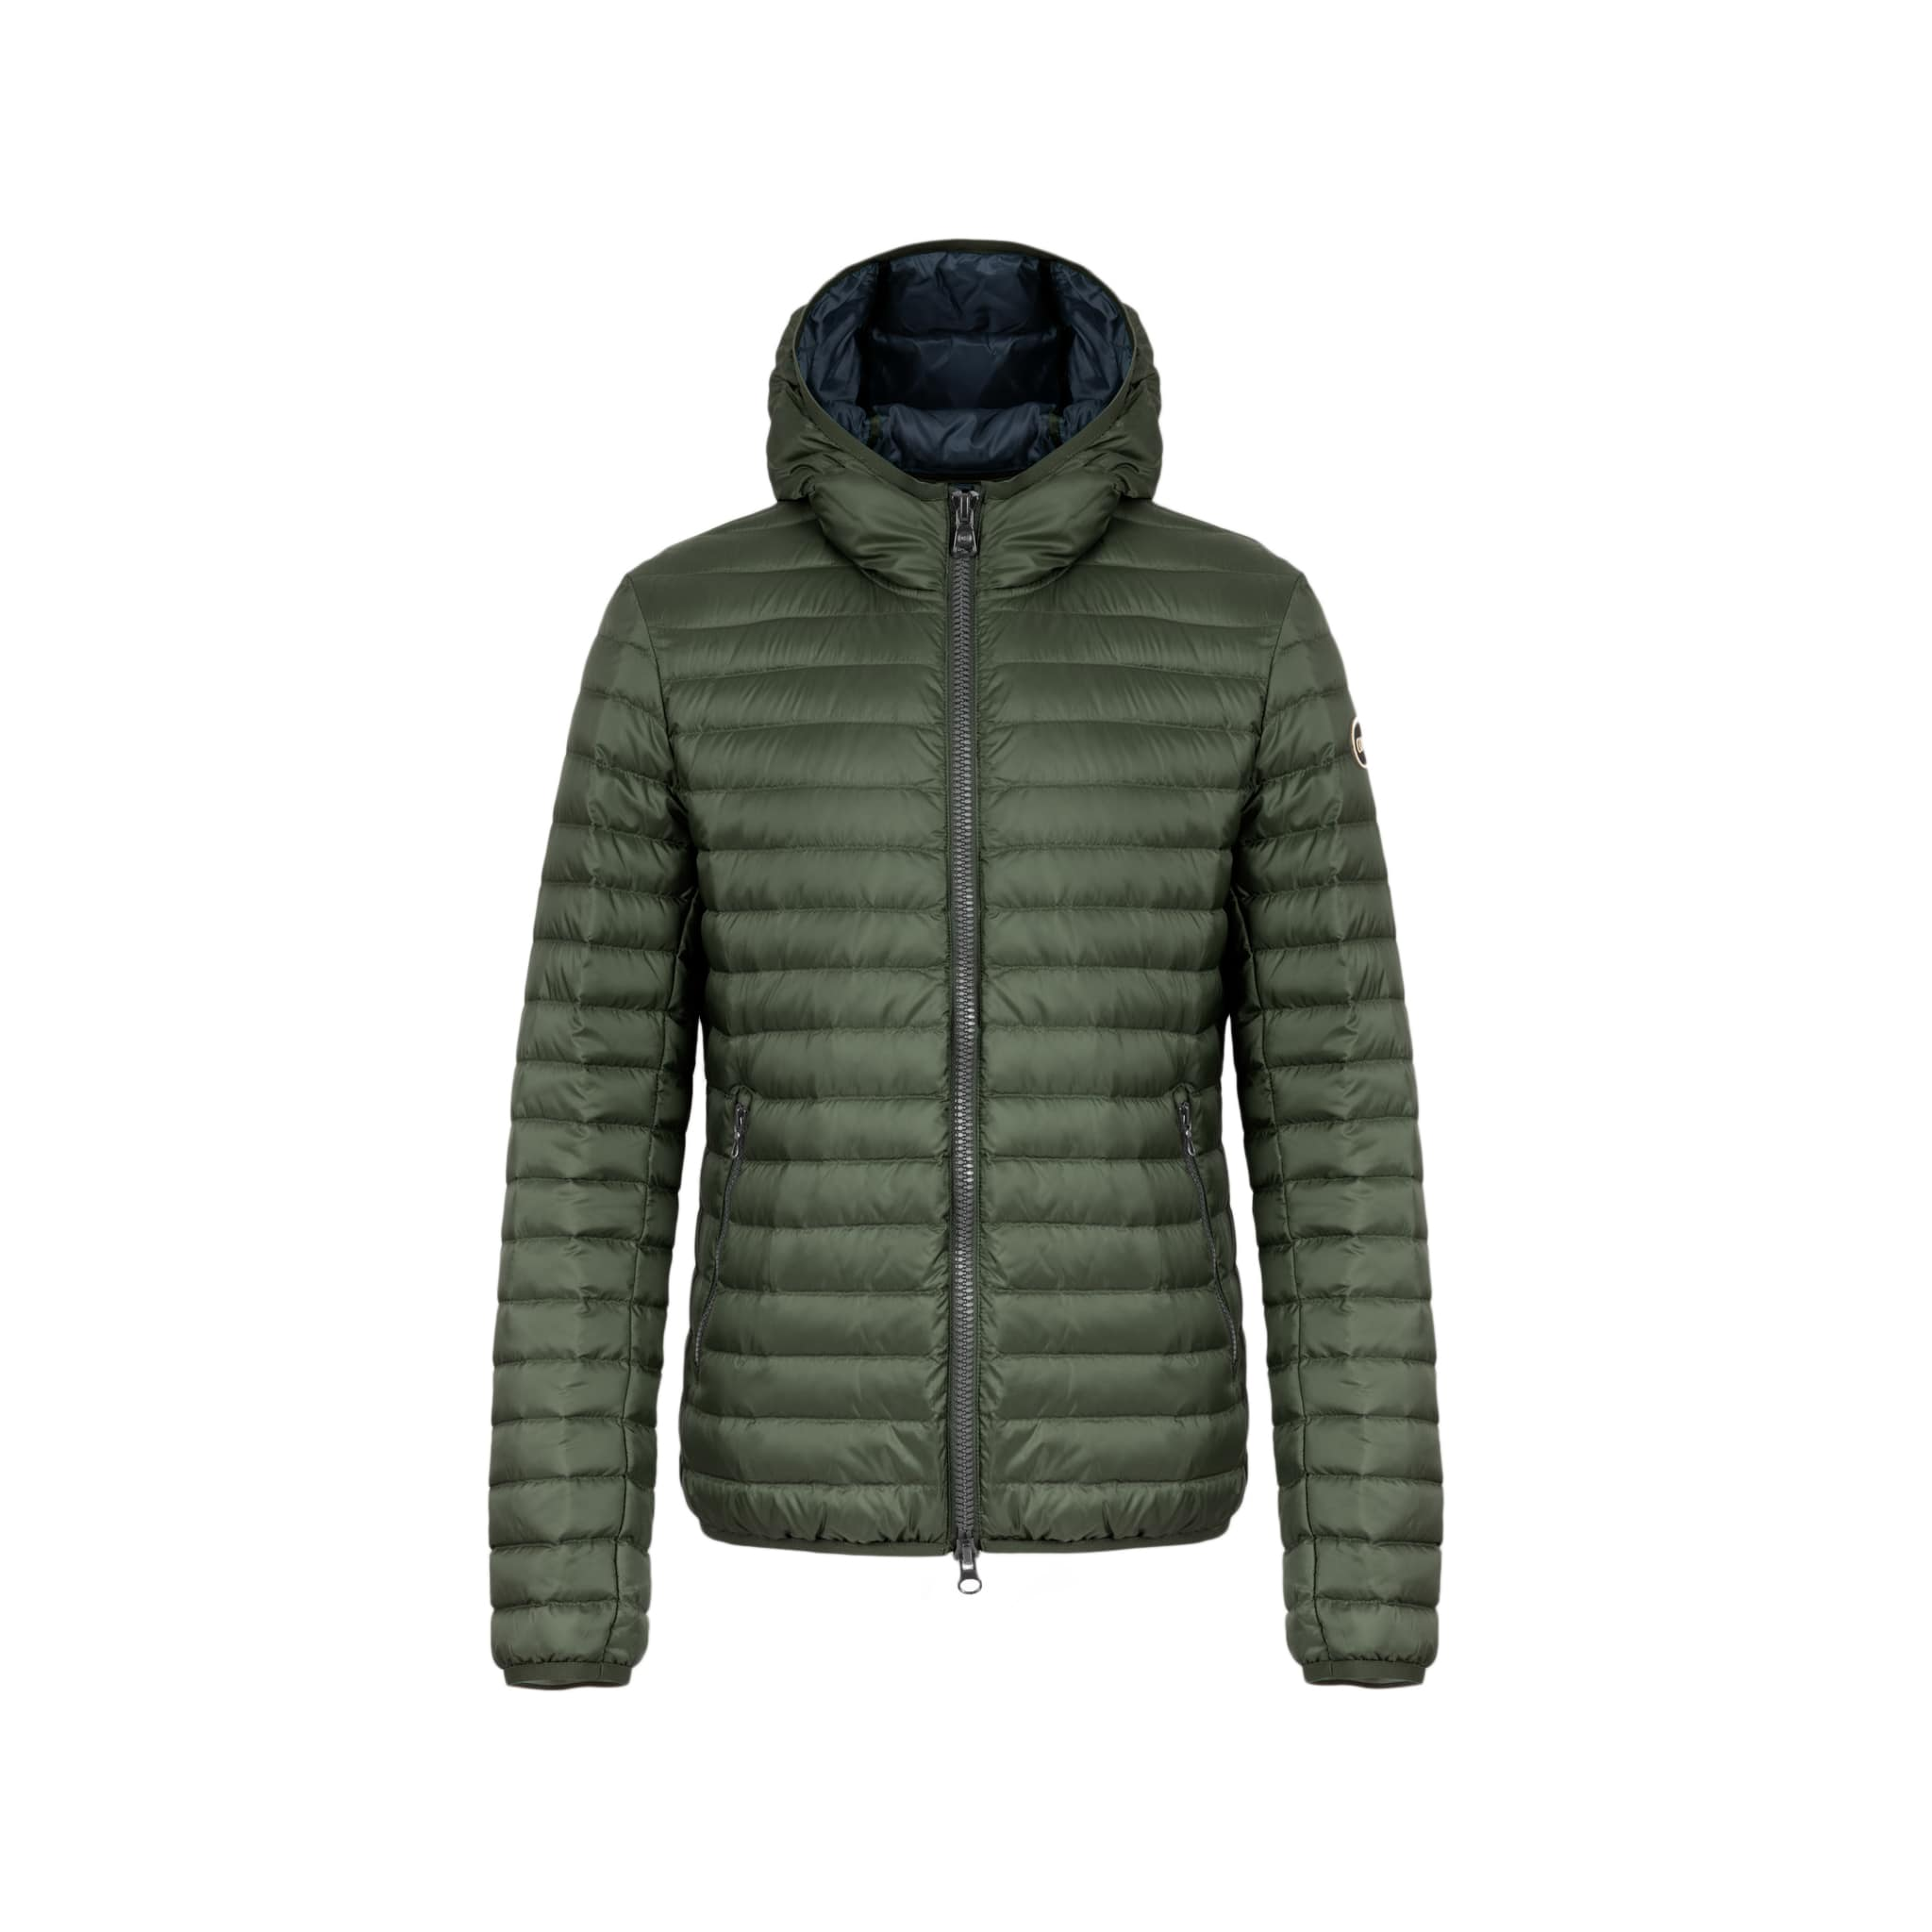 Originals Light Down Jacket M